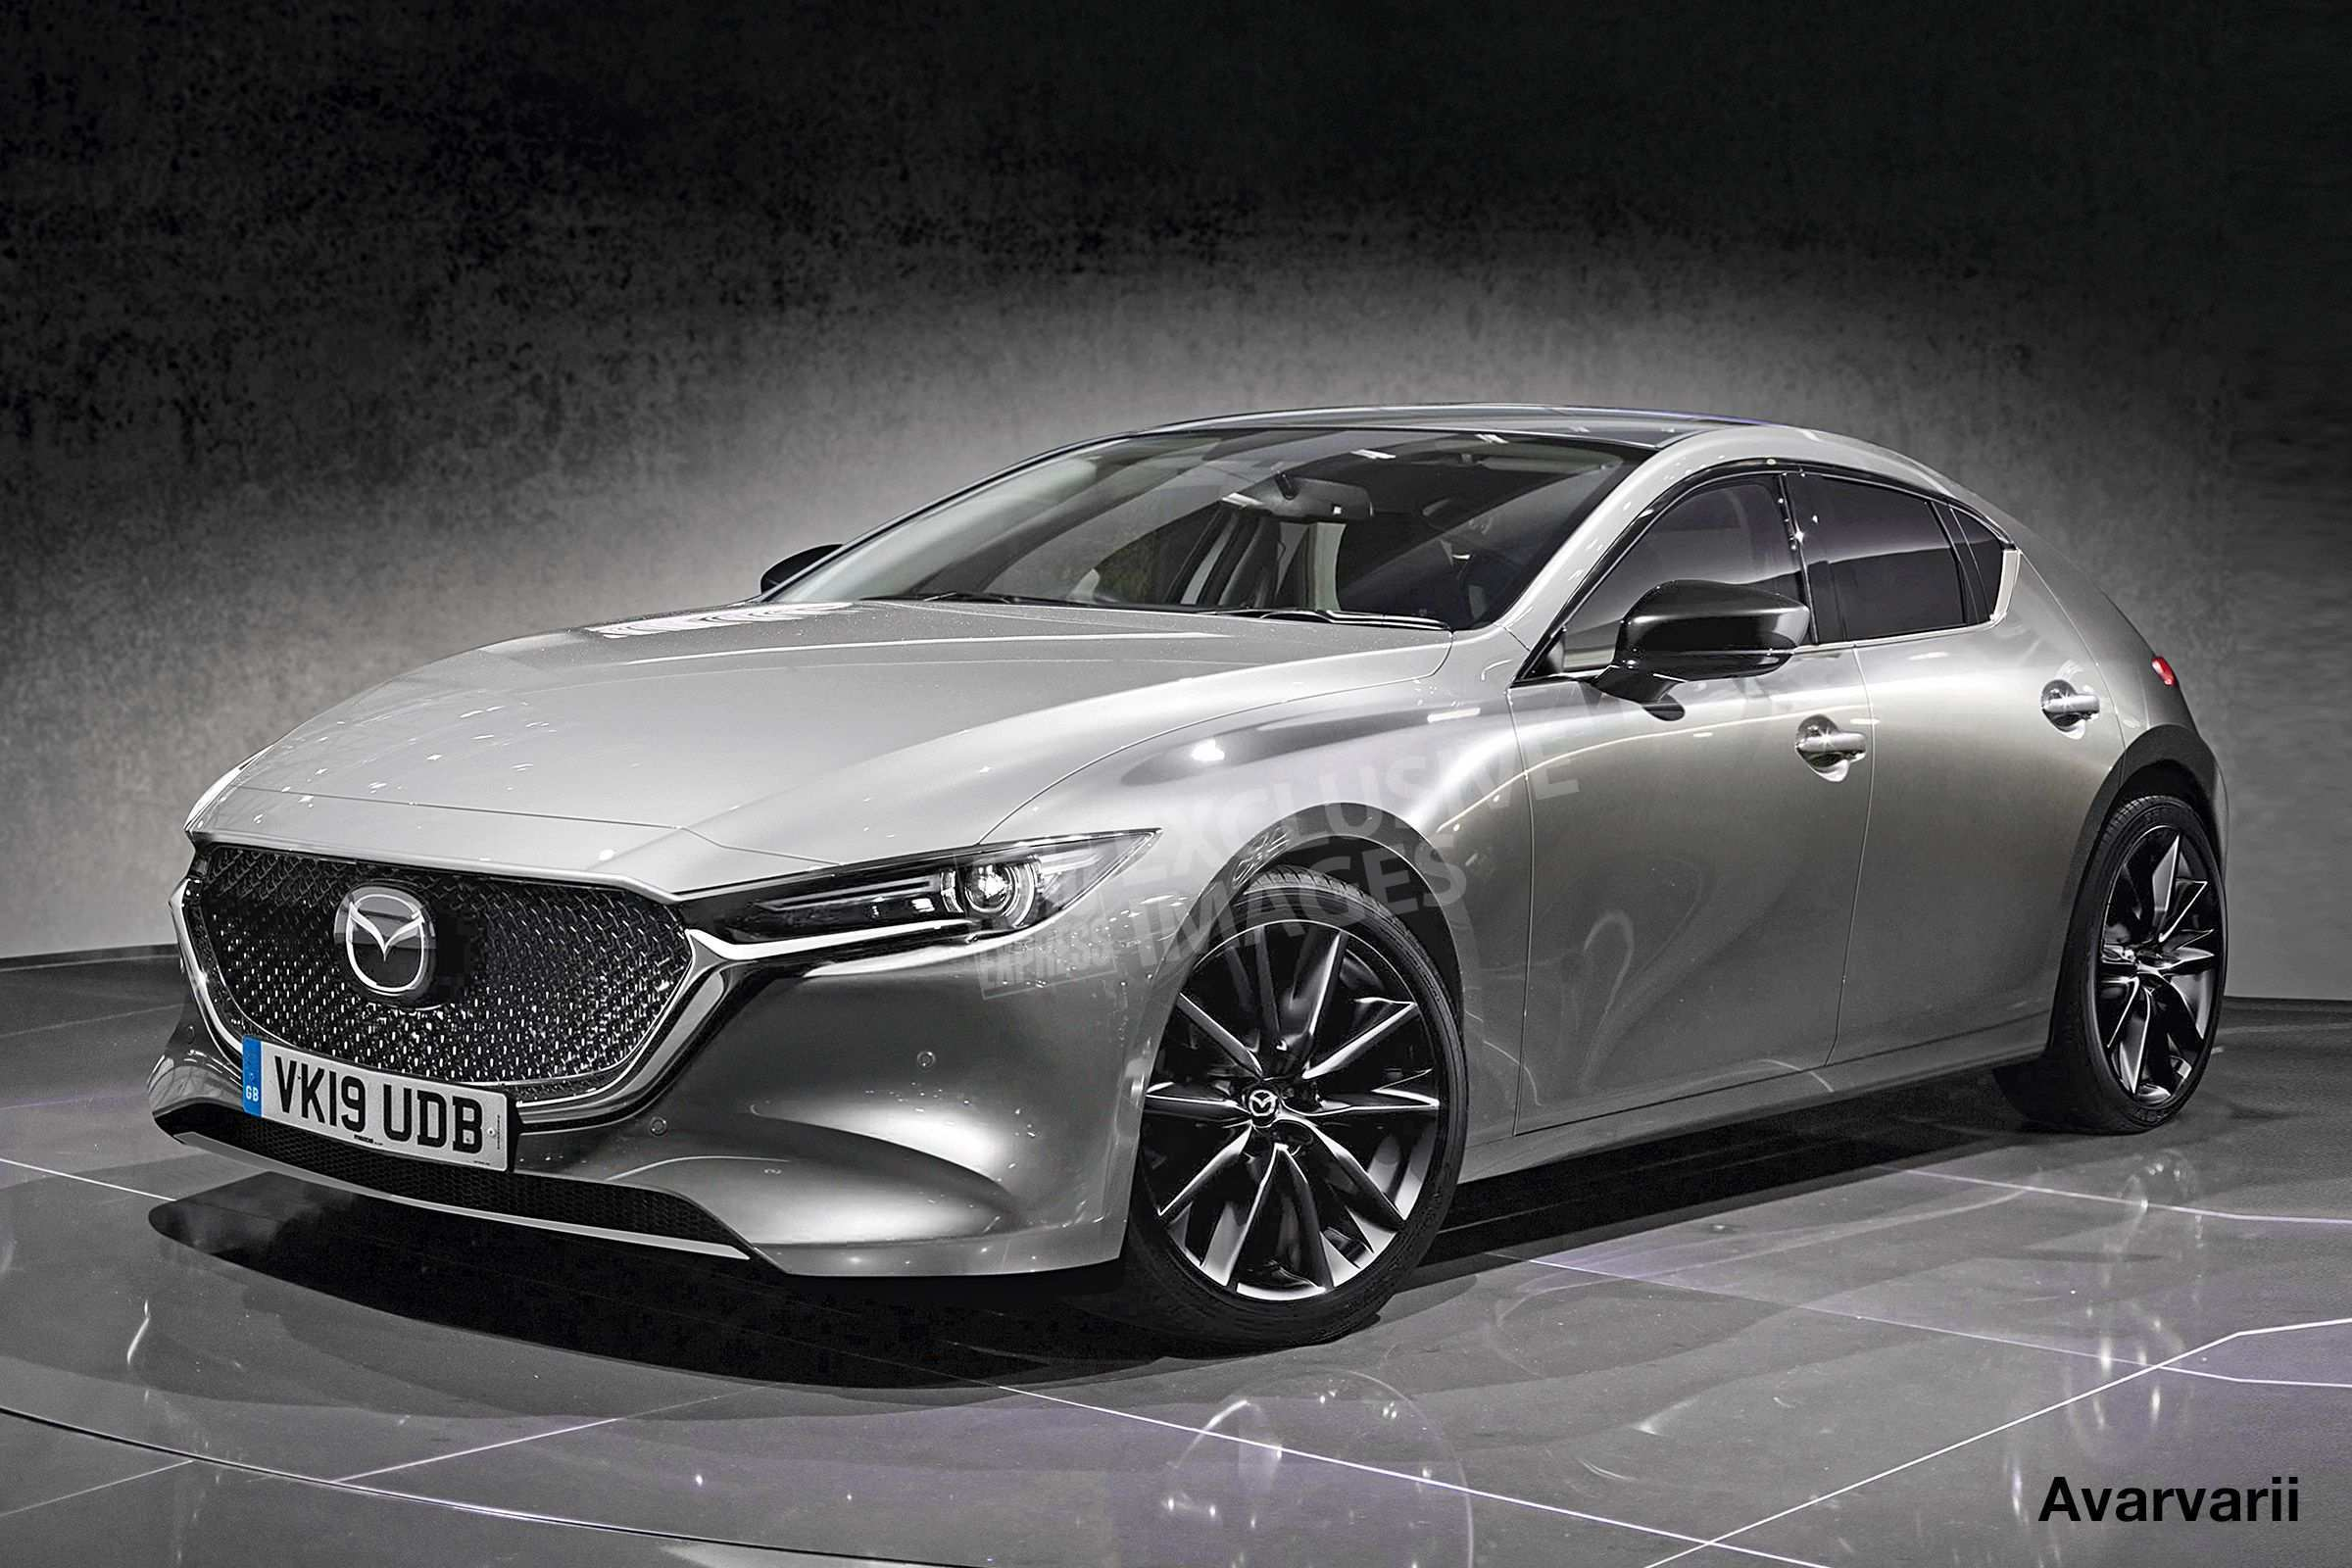 78 New Mazda 6 2019 Europe Concept Redesign And Review Exterior by Mazda 6 2019 Europe Concept Redesign And Review